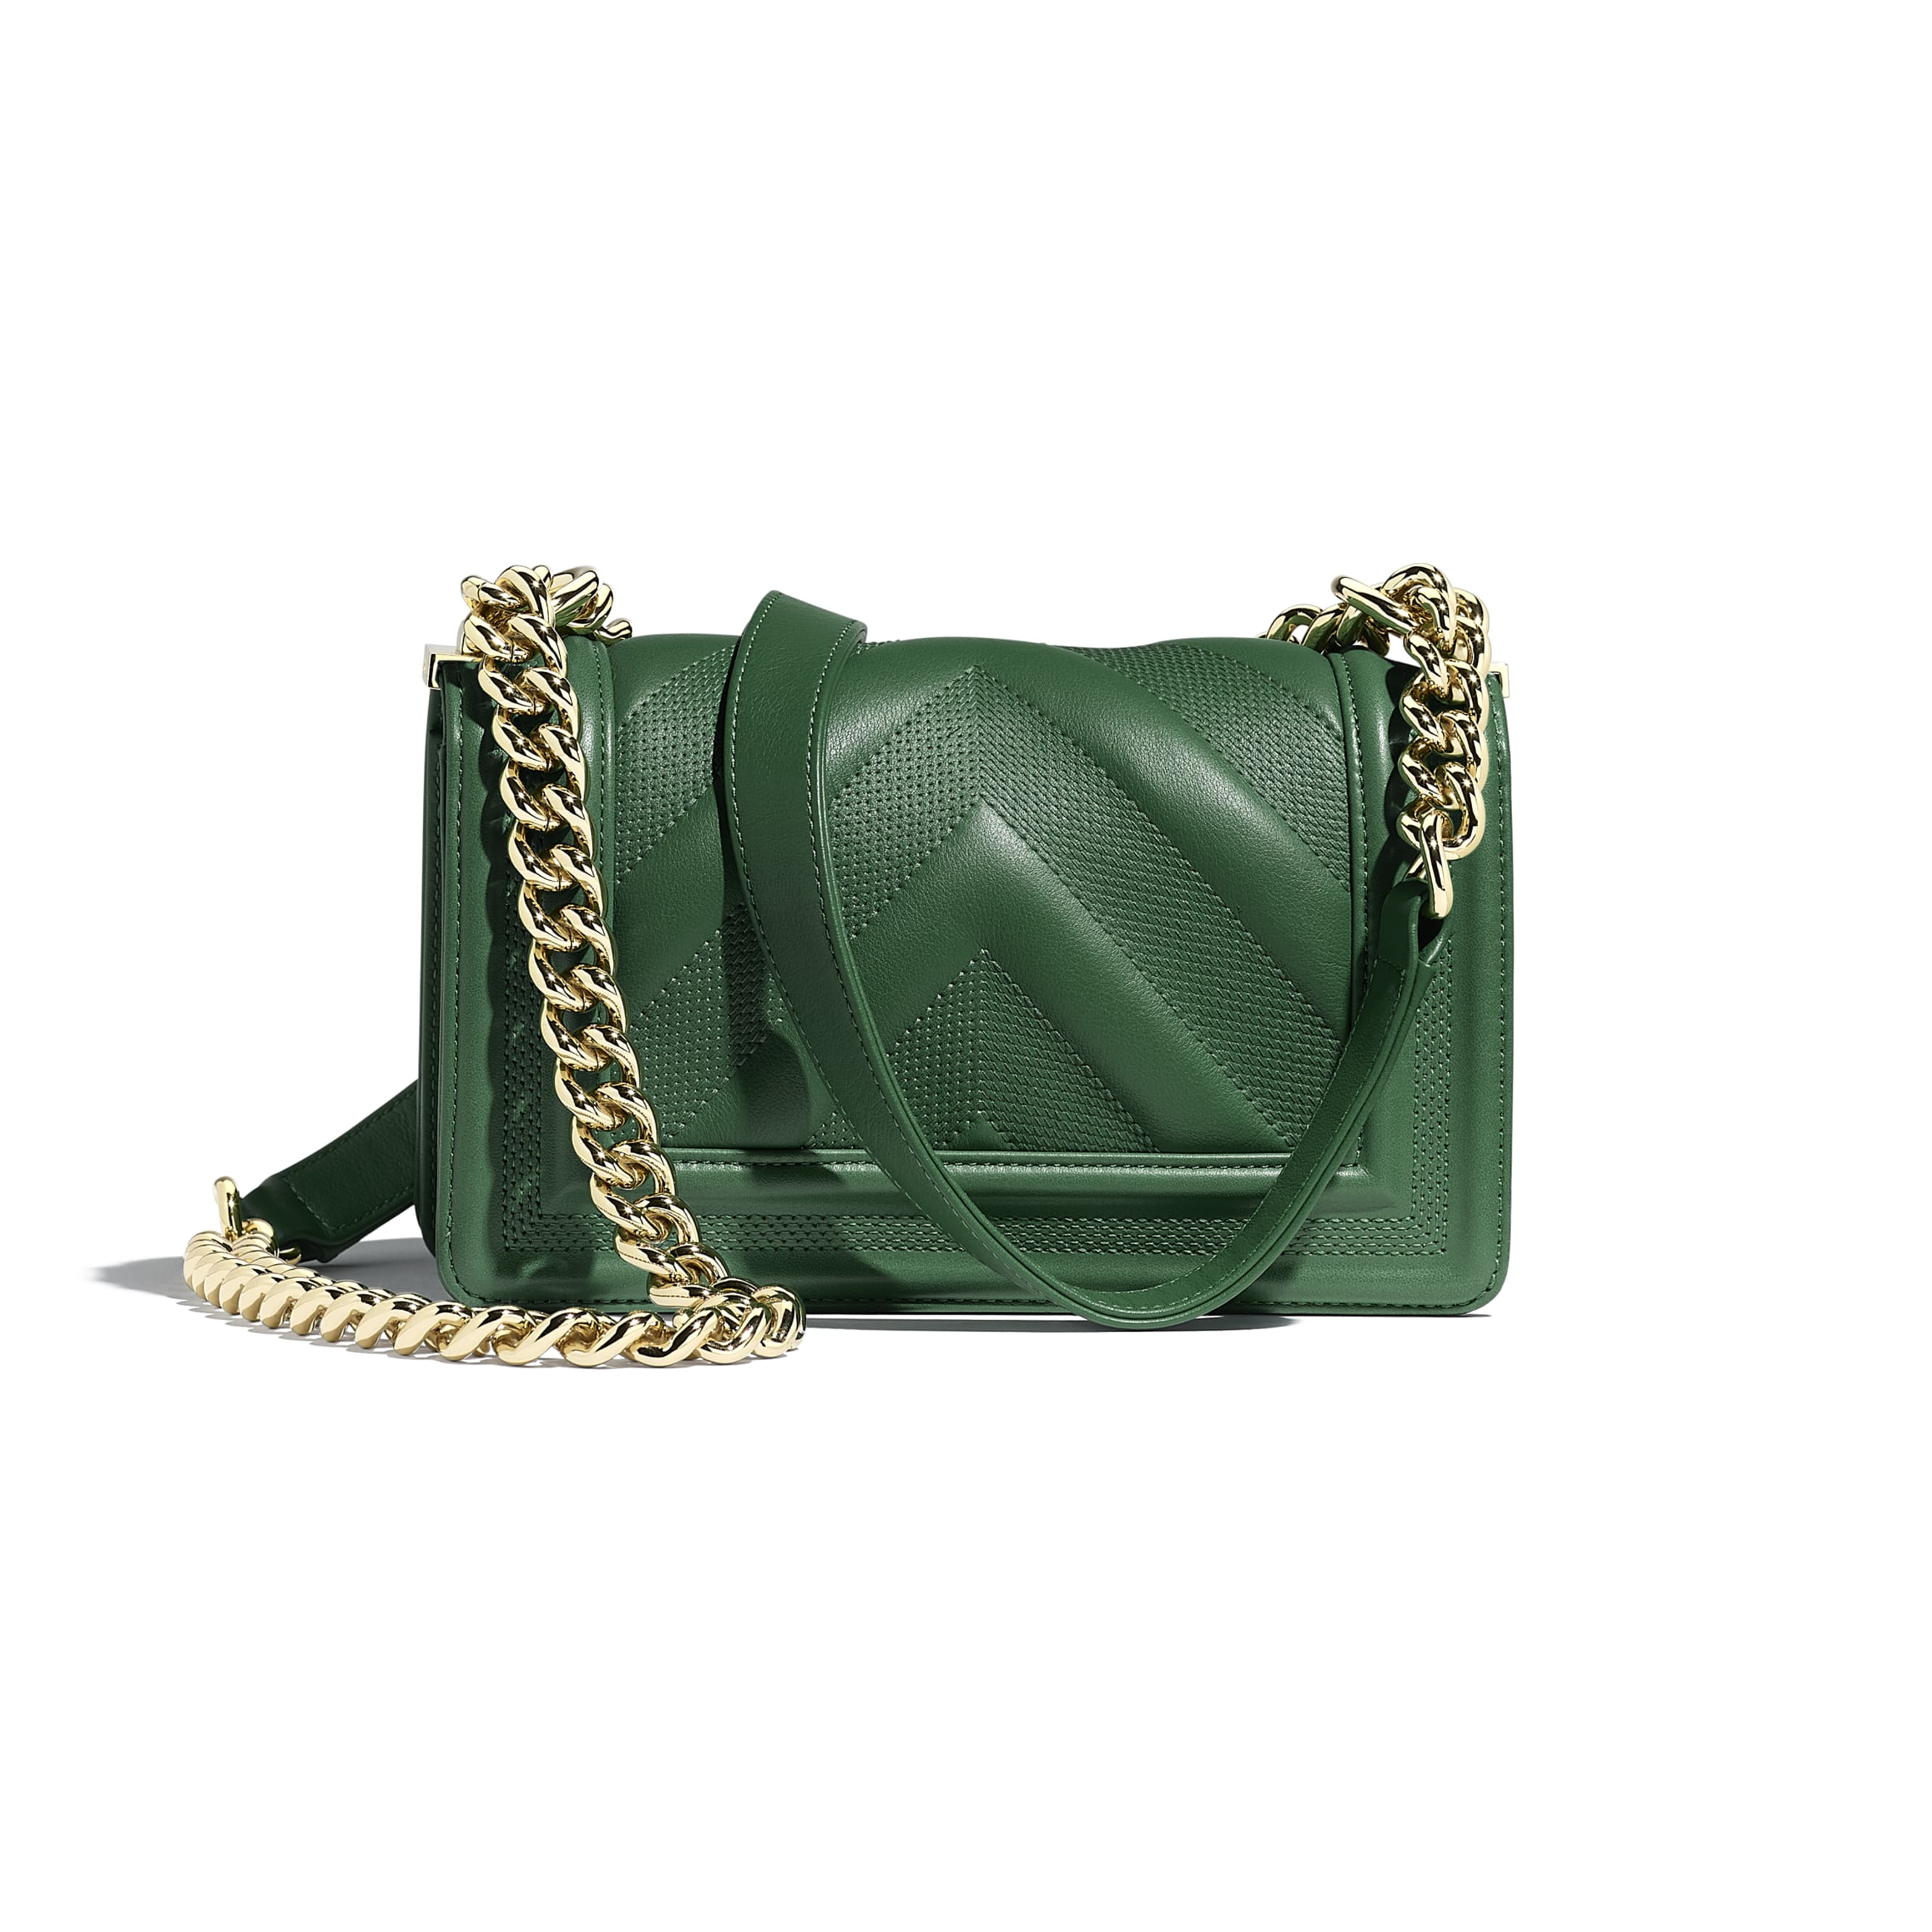 Small BOY CHANEL Handbag - Green - Calfskin & Gold-Tone Metal - Alternative view - see standard sized version